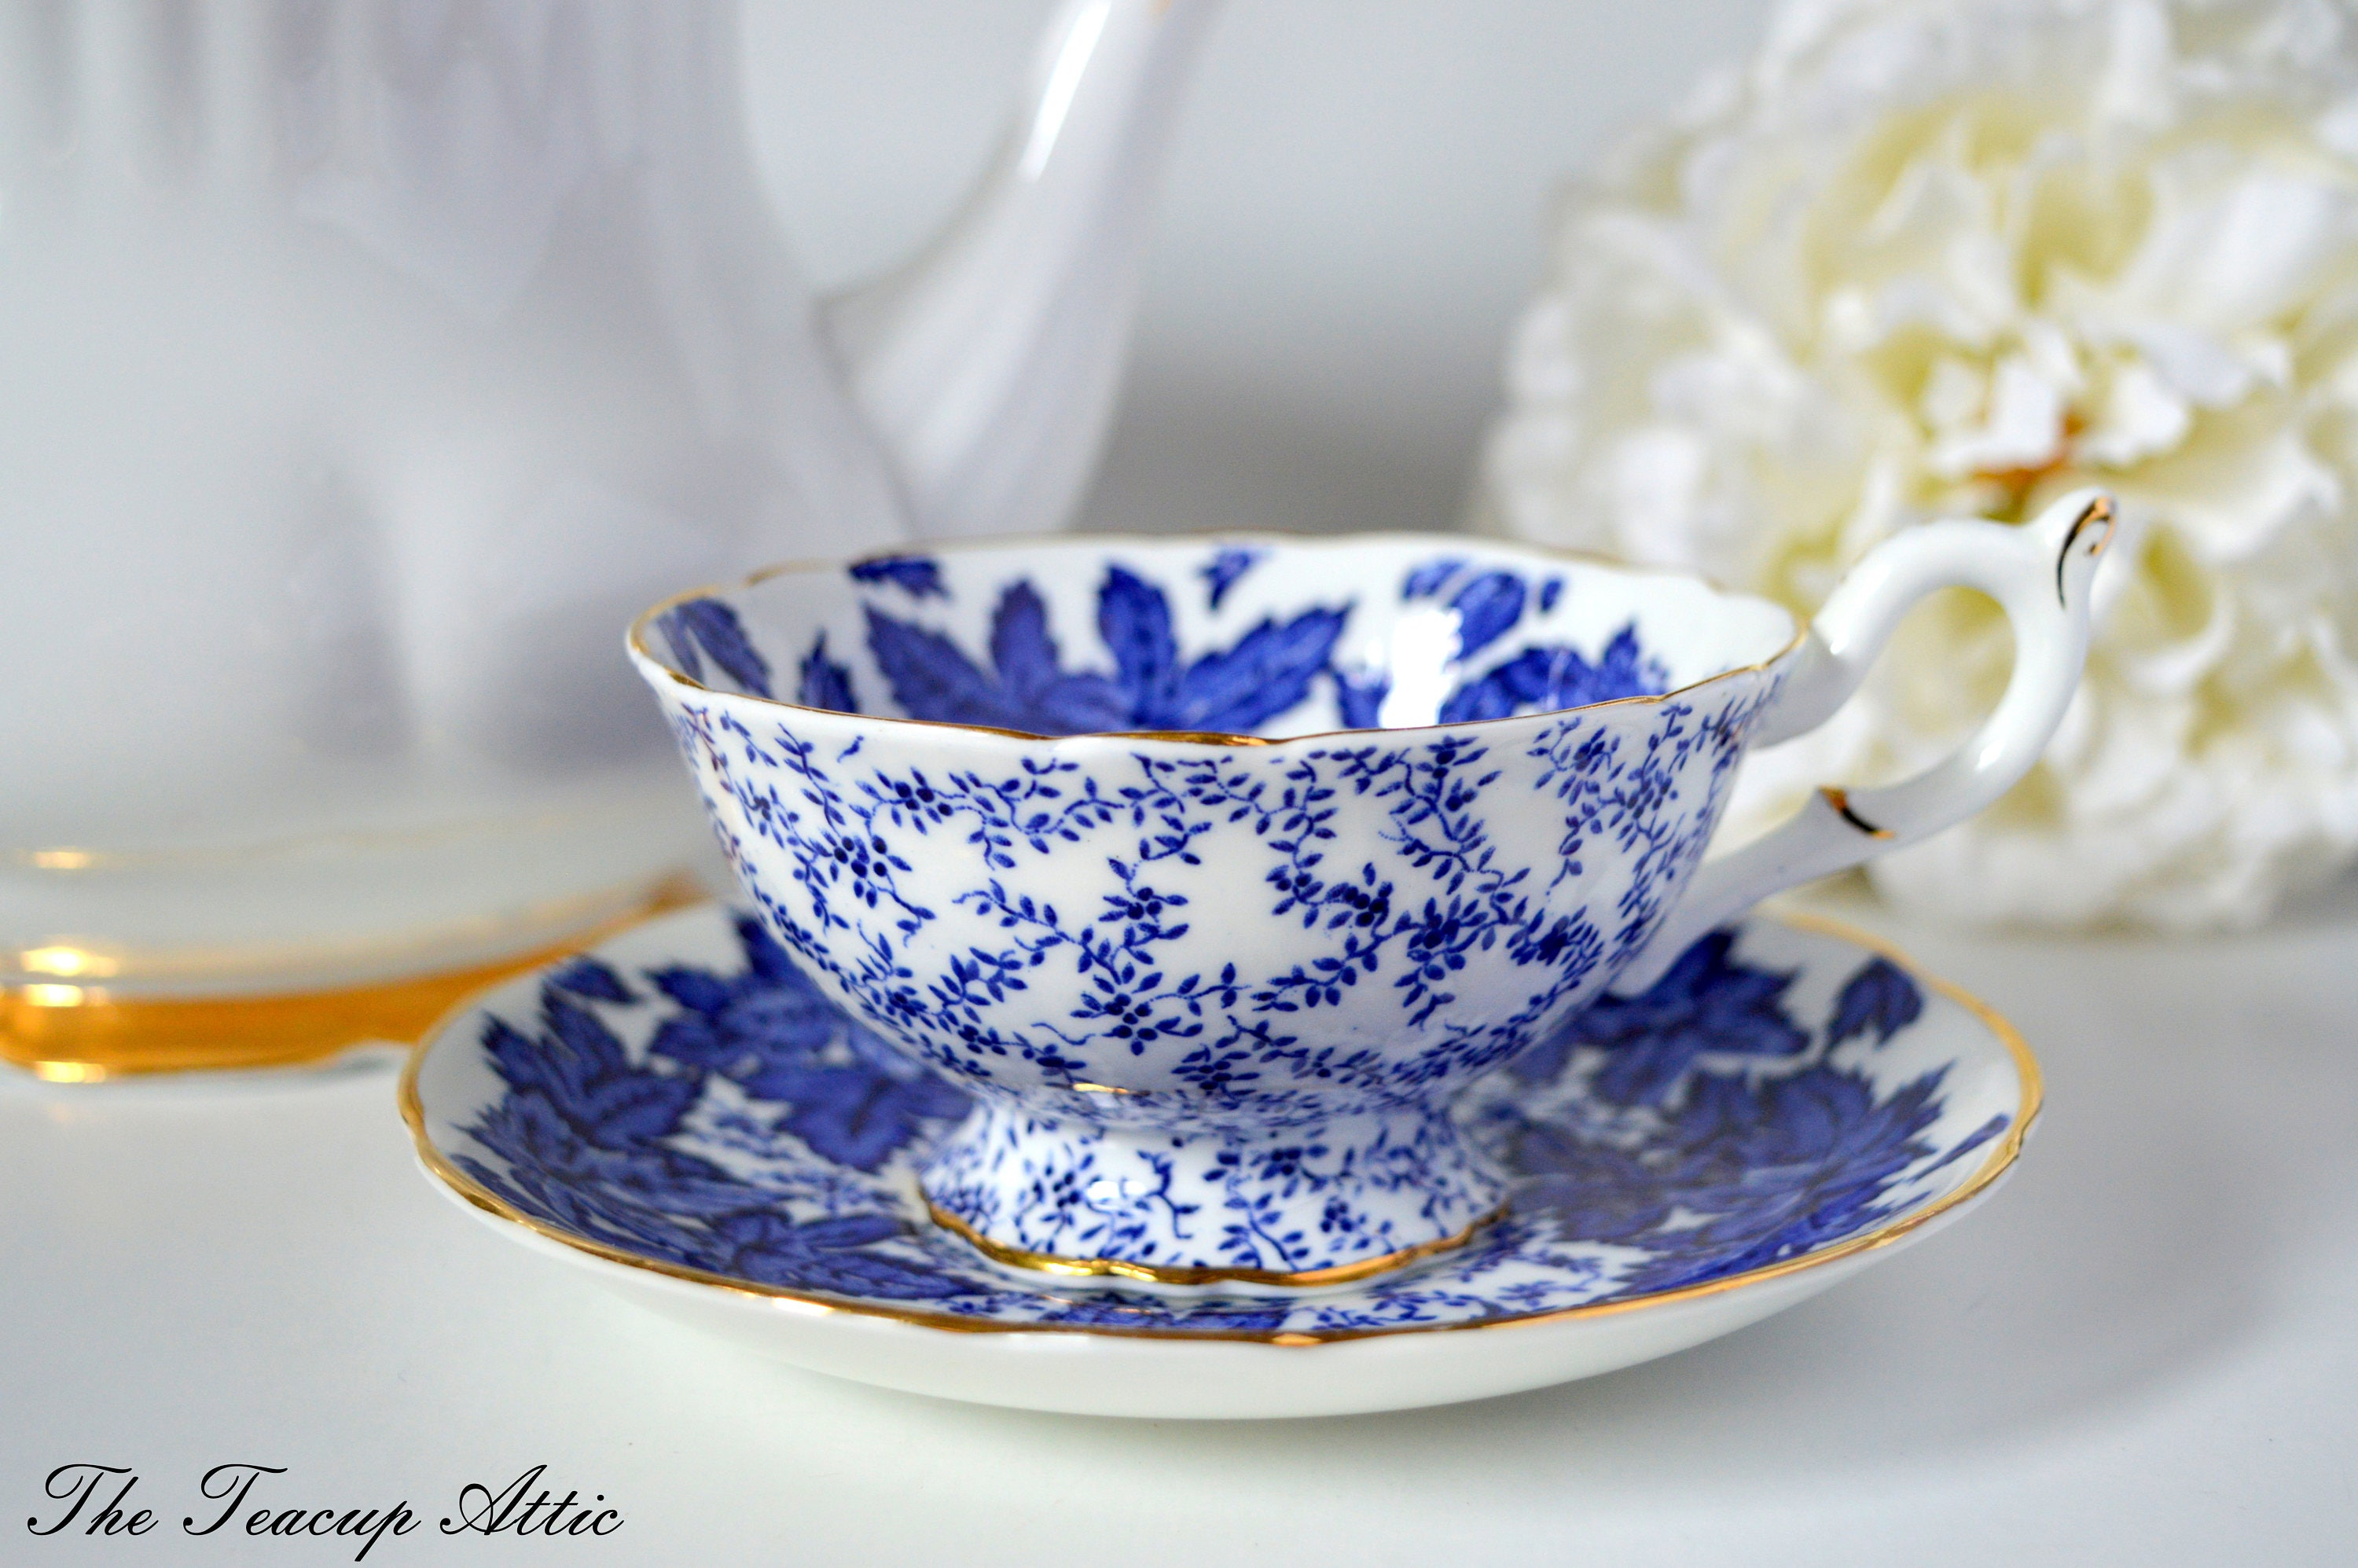 Coalport Footed Teacup and Saucer Set With Blue Leaves, English Bone China Tea Cup Set, Wedding Gift, c. 1940-